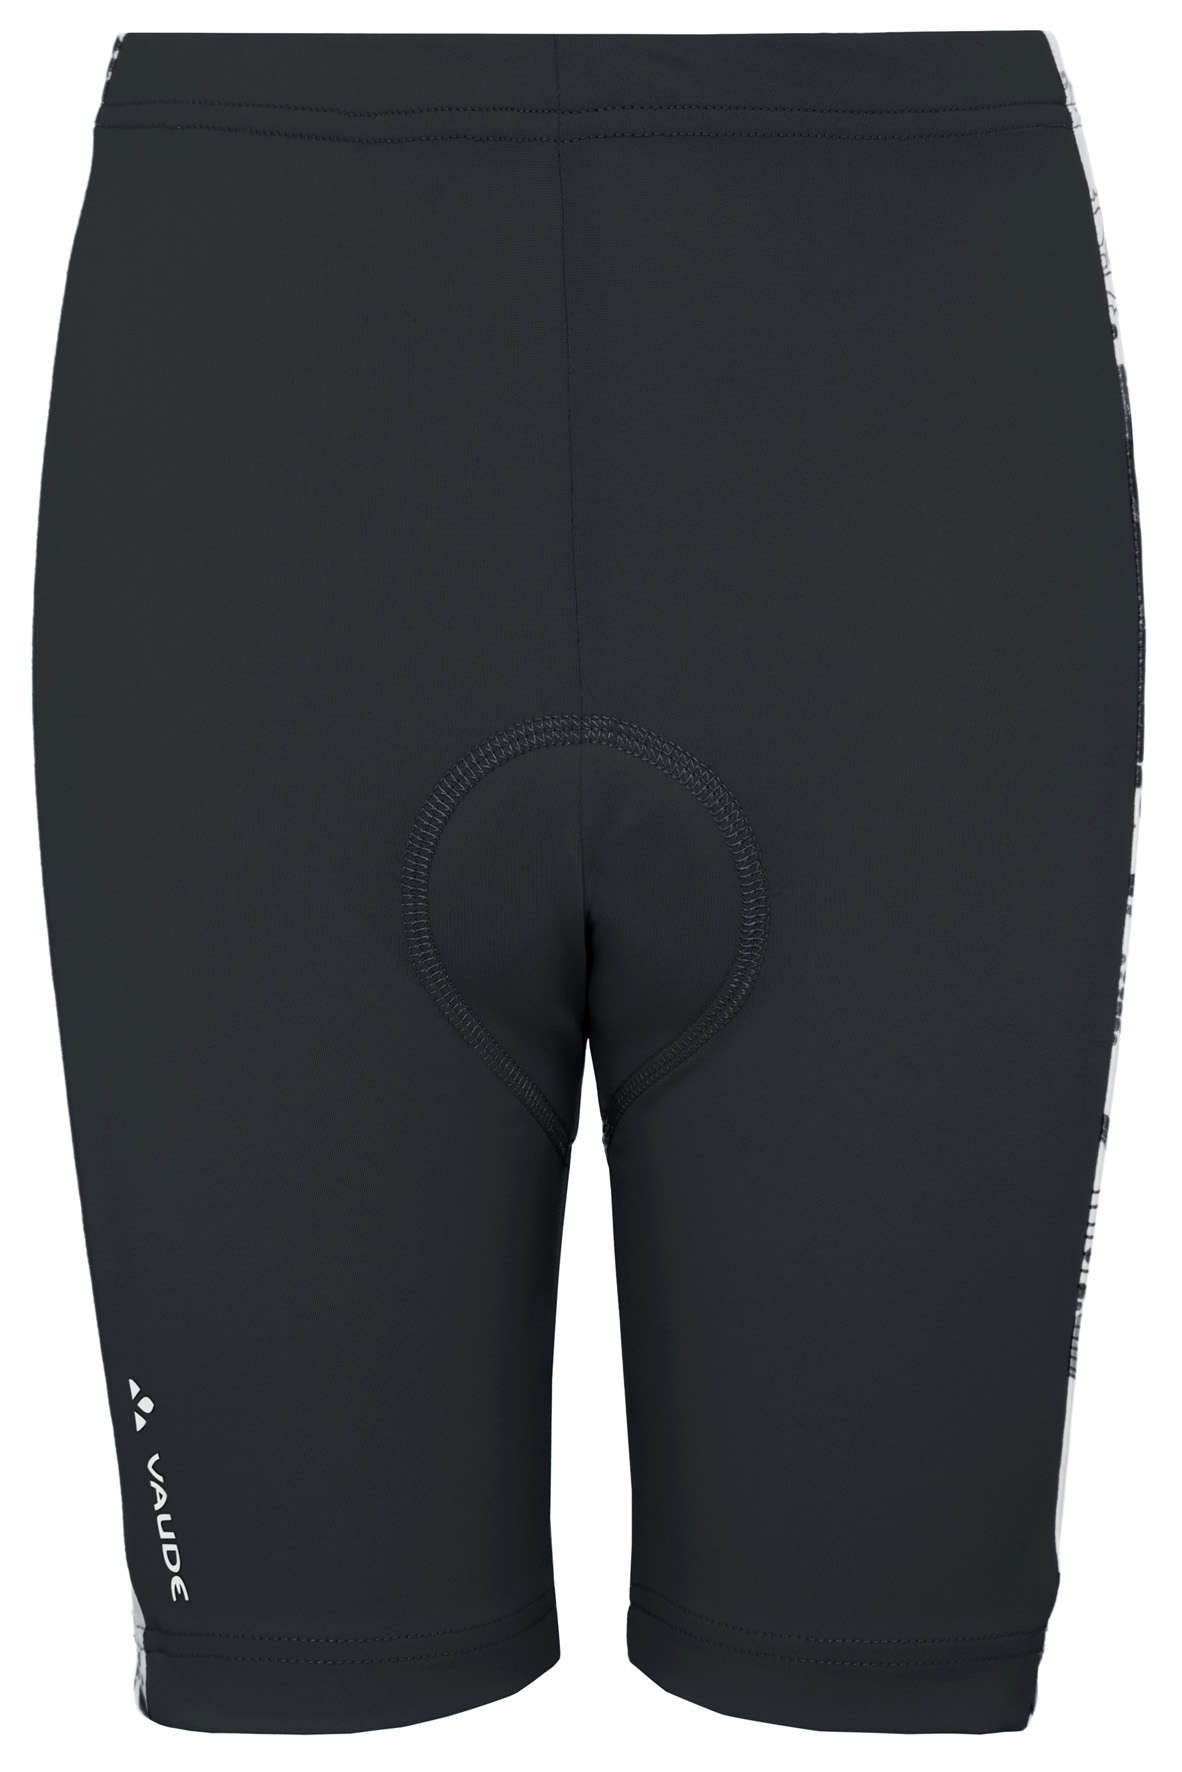 Kids Elmo Pants IV black Größe 122/128 - schneider-sports